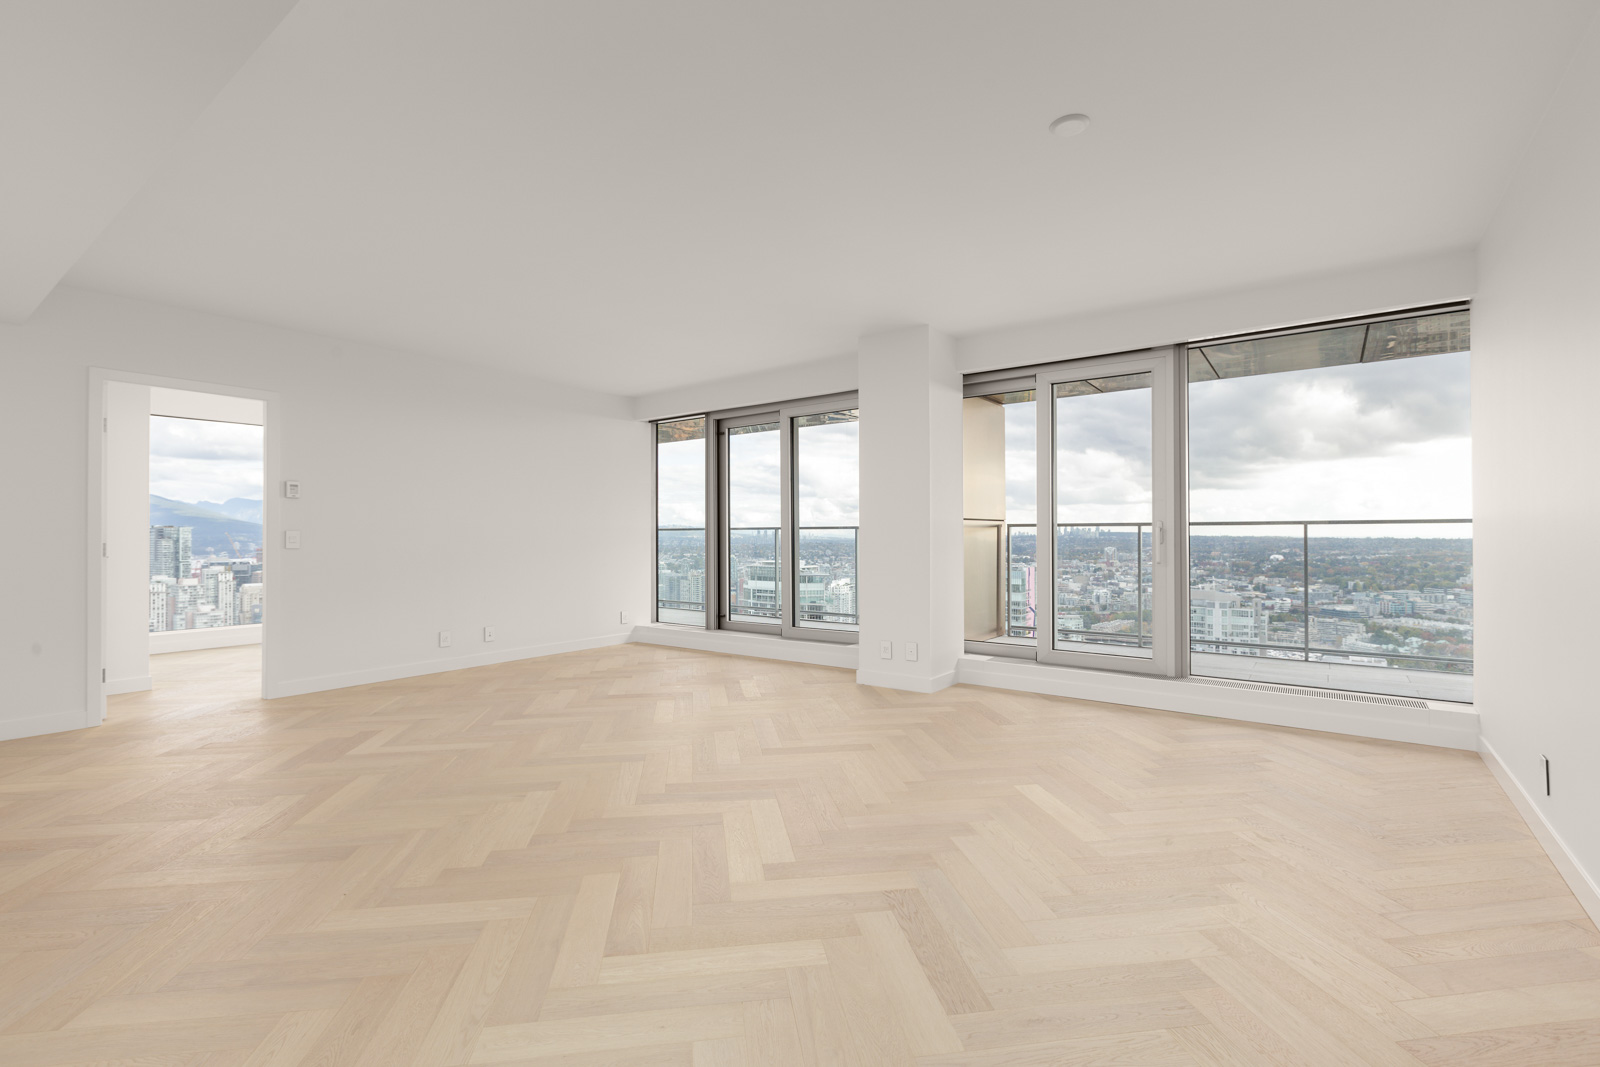 living room with view in upscale downtown Vancouver condo